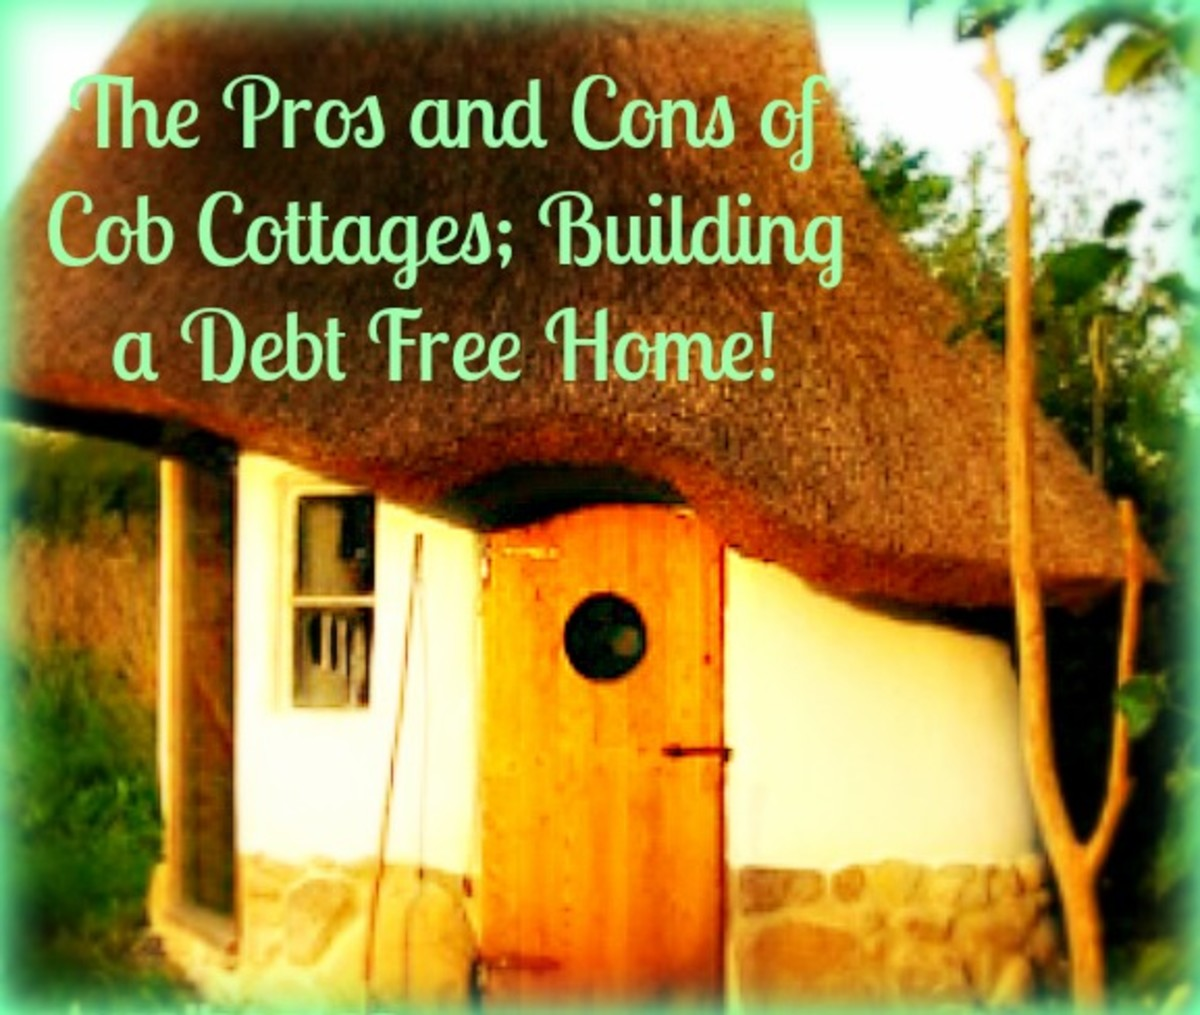 the-pros-and-cons-of-cob-cottages